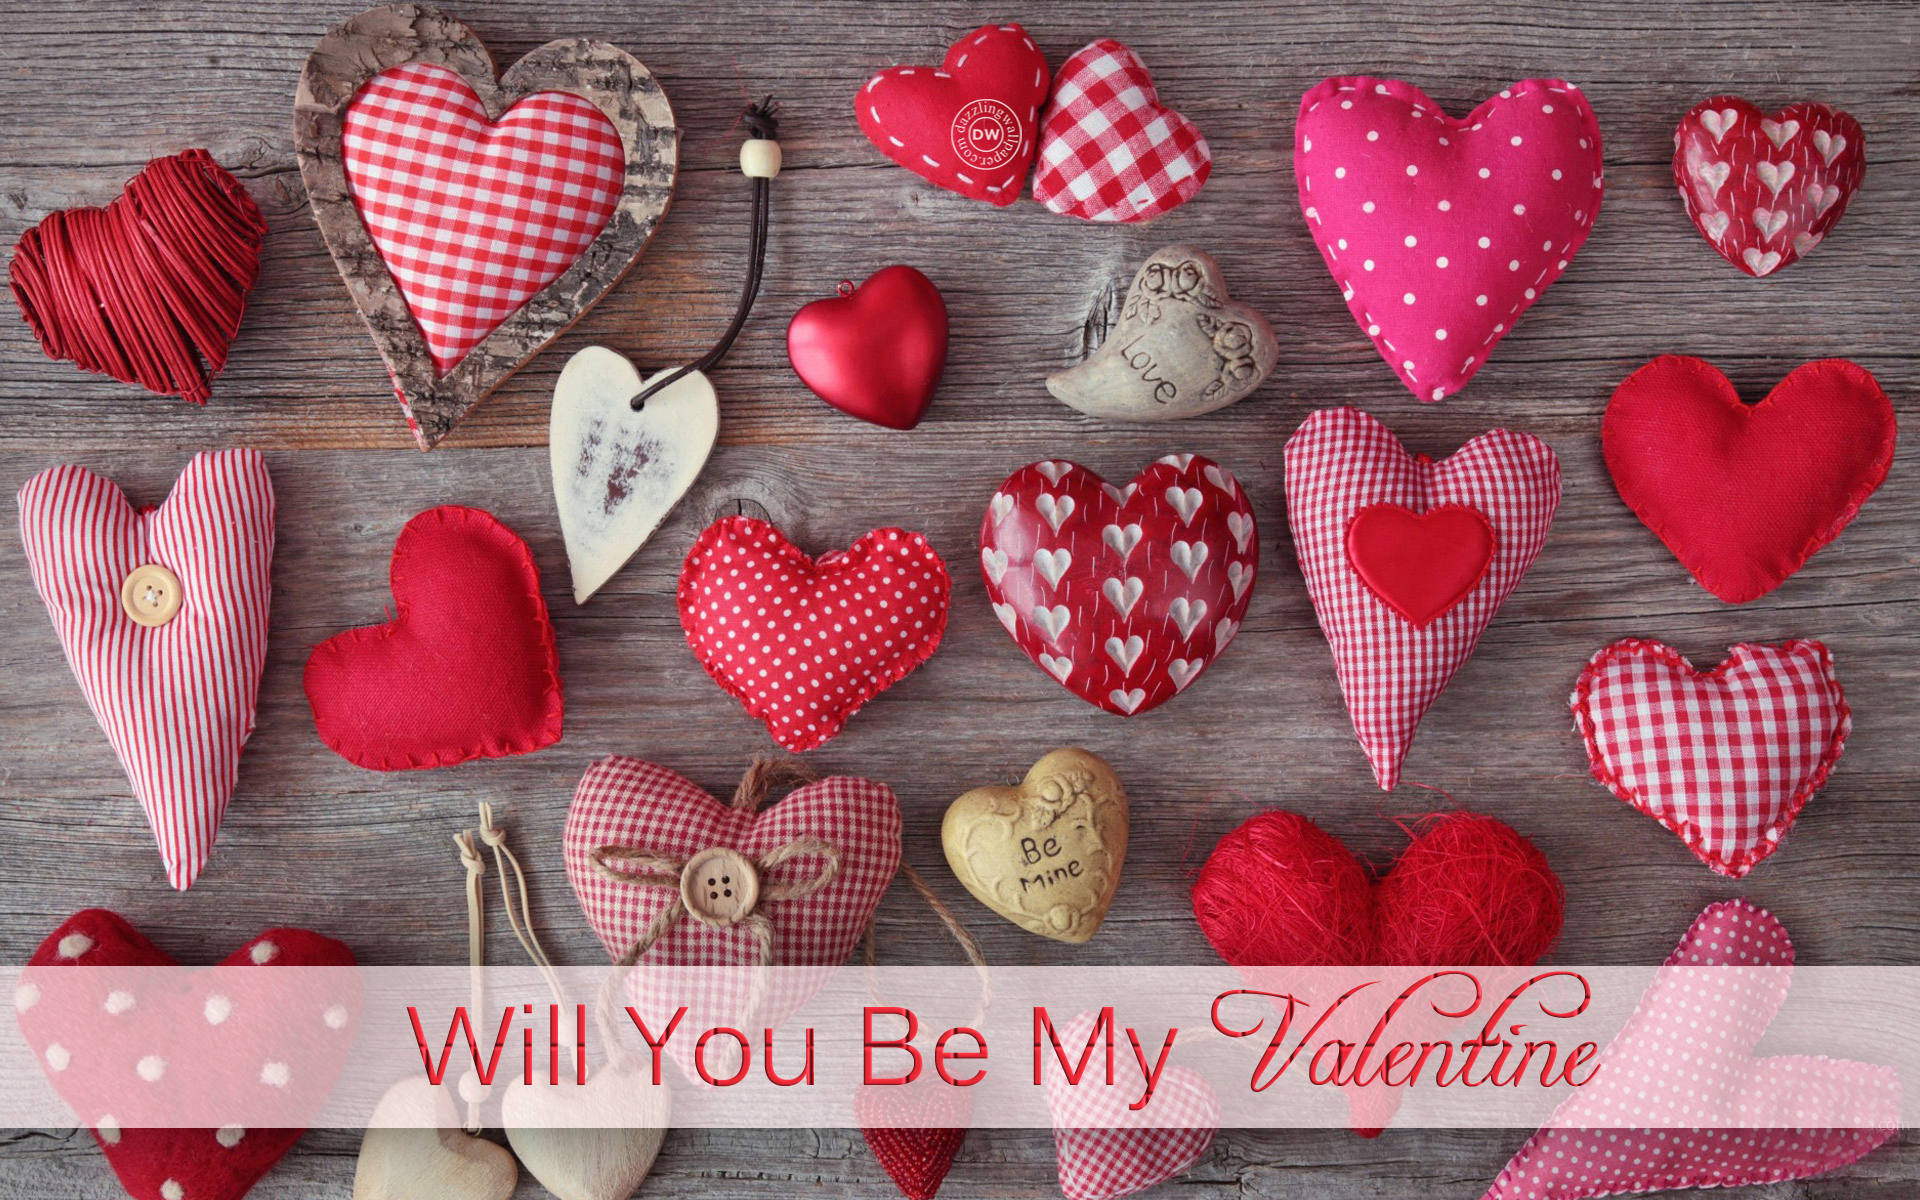 Cute Love Valentine Day Wallpaper Background Wallpaper with 1920x1200 1920x1200